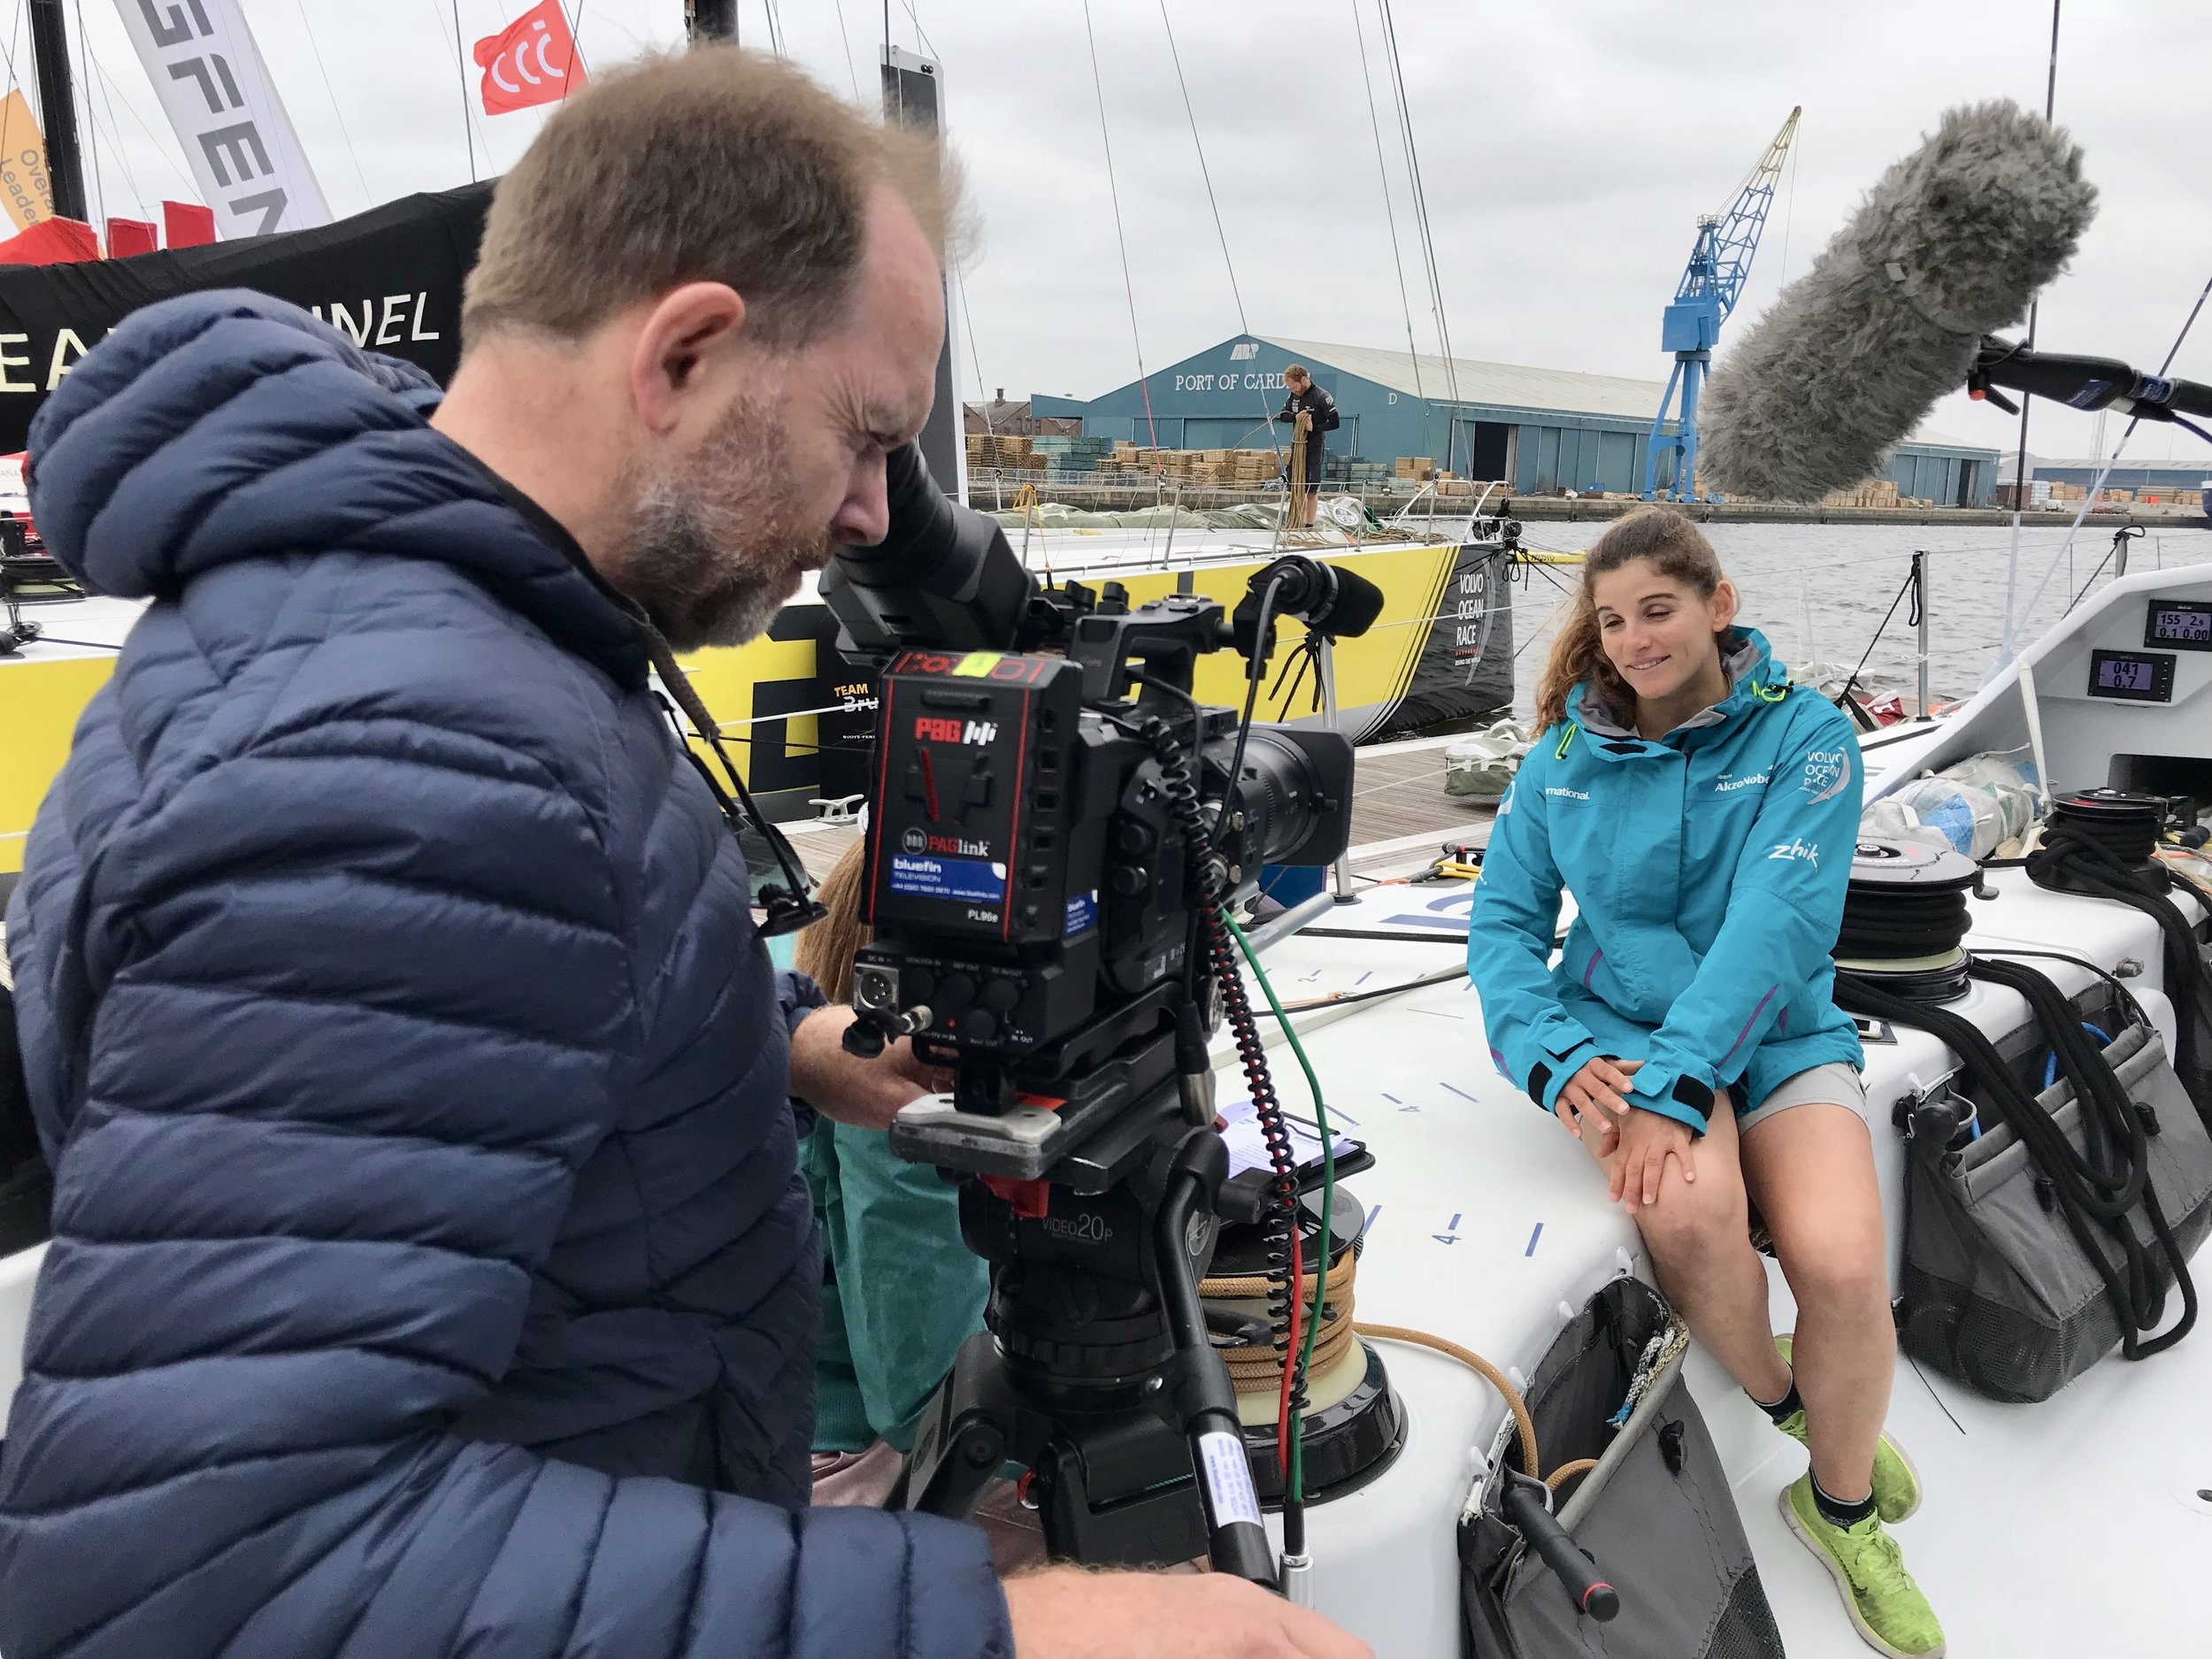 DoP Ant Leake Filming an Interview on board Azko Nobel's Boat - Cardiff 2018 - Ant Leake for Bluefin TV